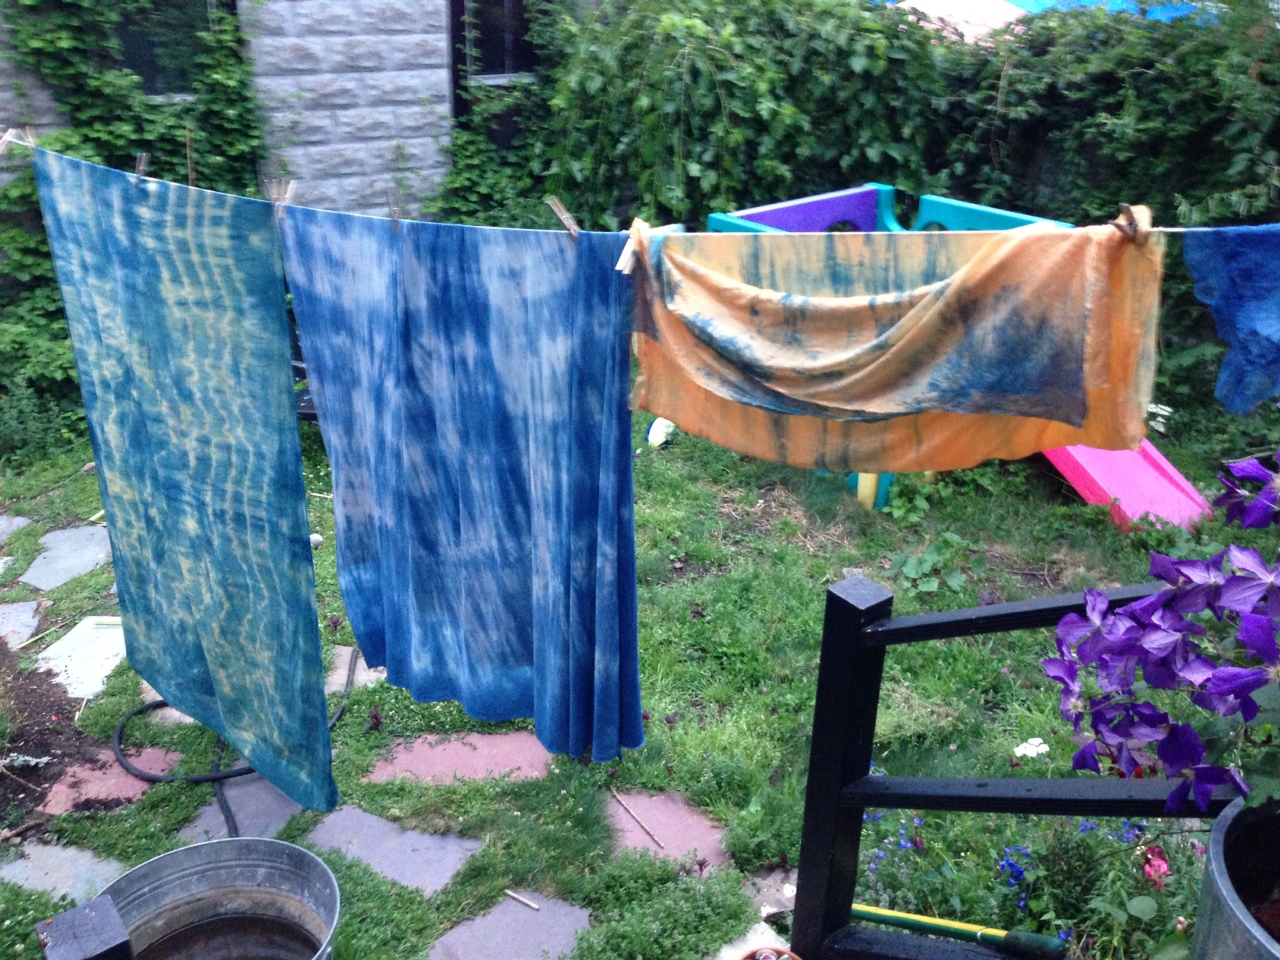 Coreopsis and Indigo dyed fiber